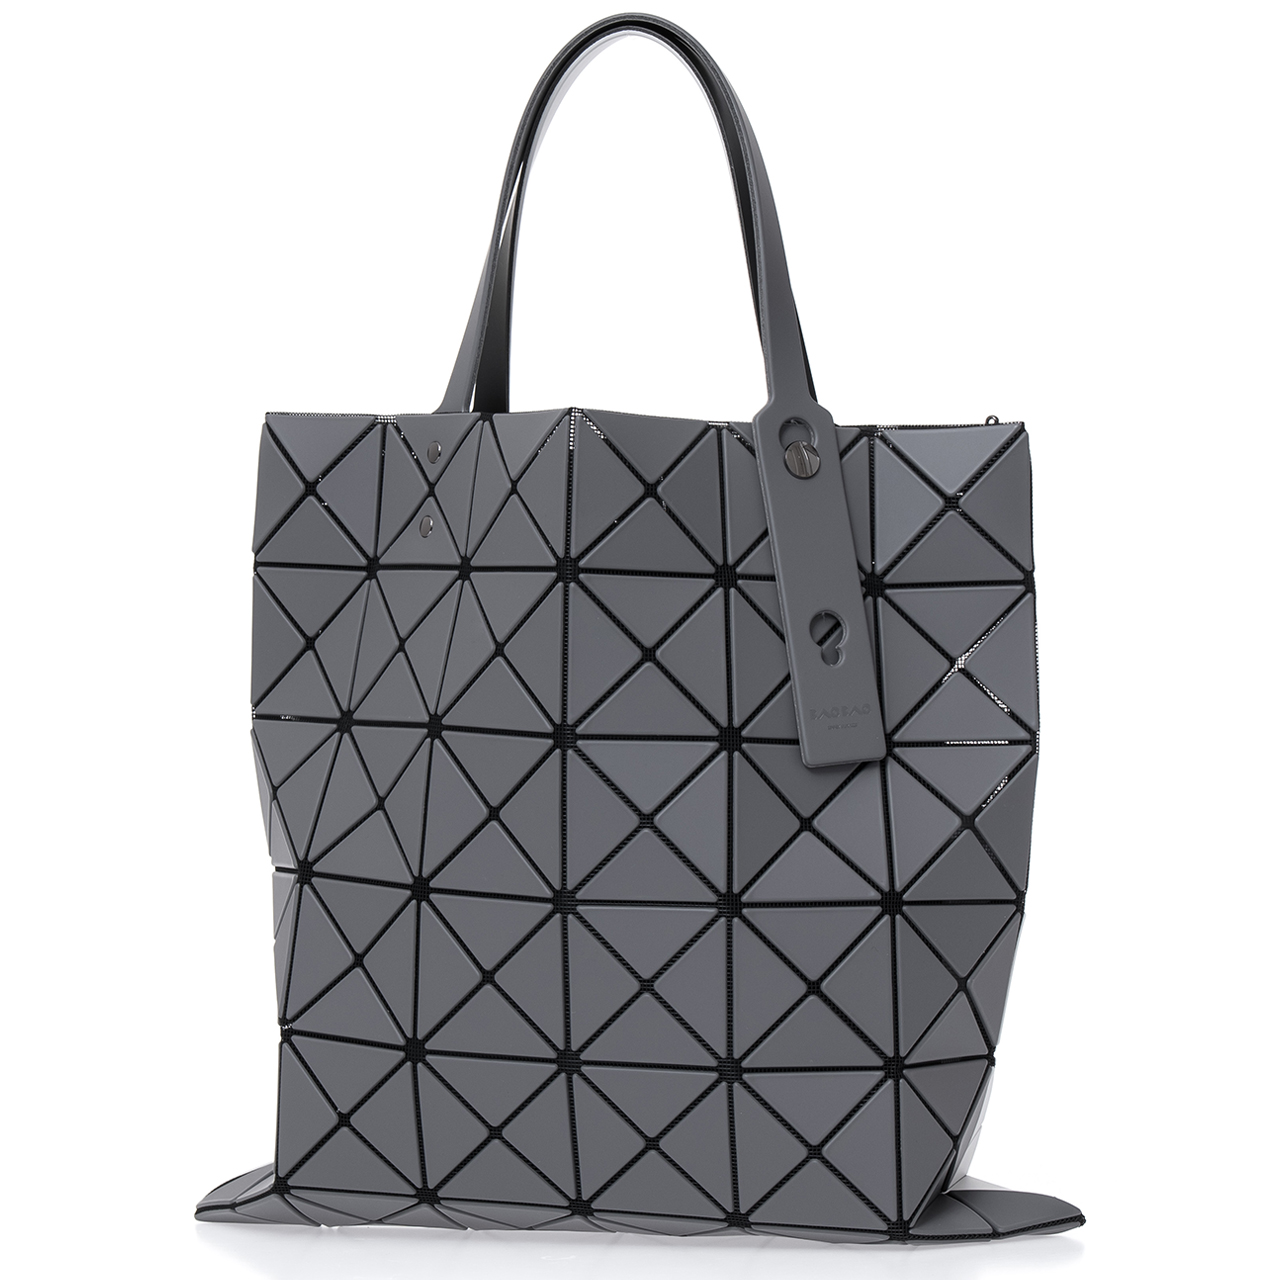 df45e89da3b0 バオバオイッセイミヤケ BAOBAO ISSEY MIYAKE bag tote bag LUCENT FROST  Lucent  BB76  AG603  all two colors